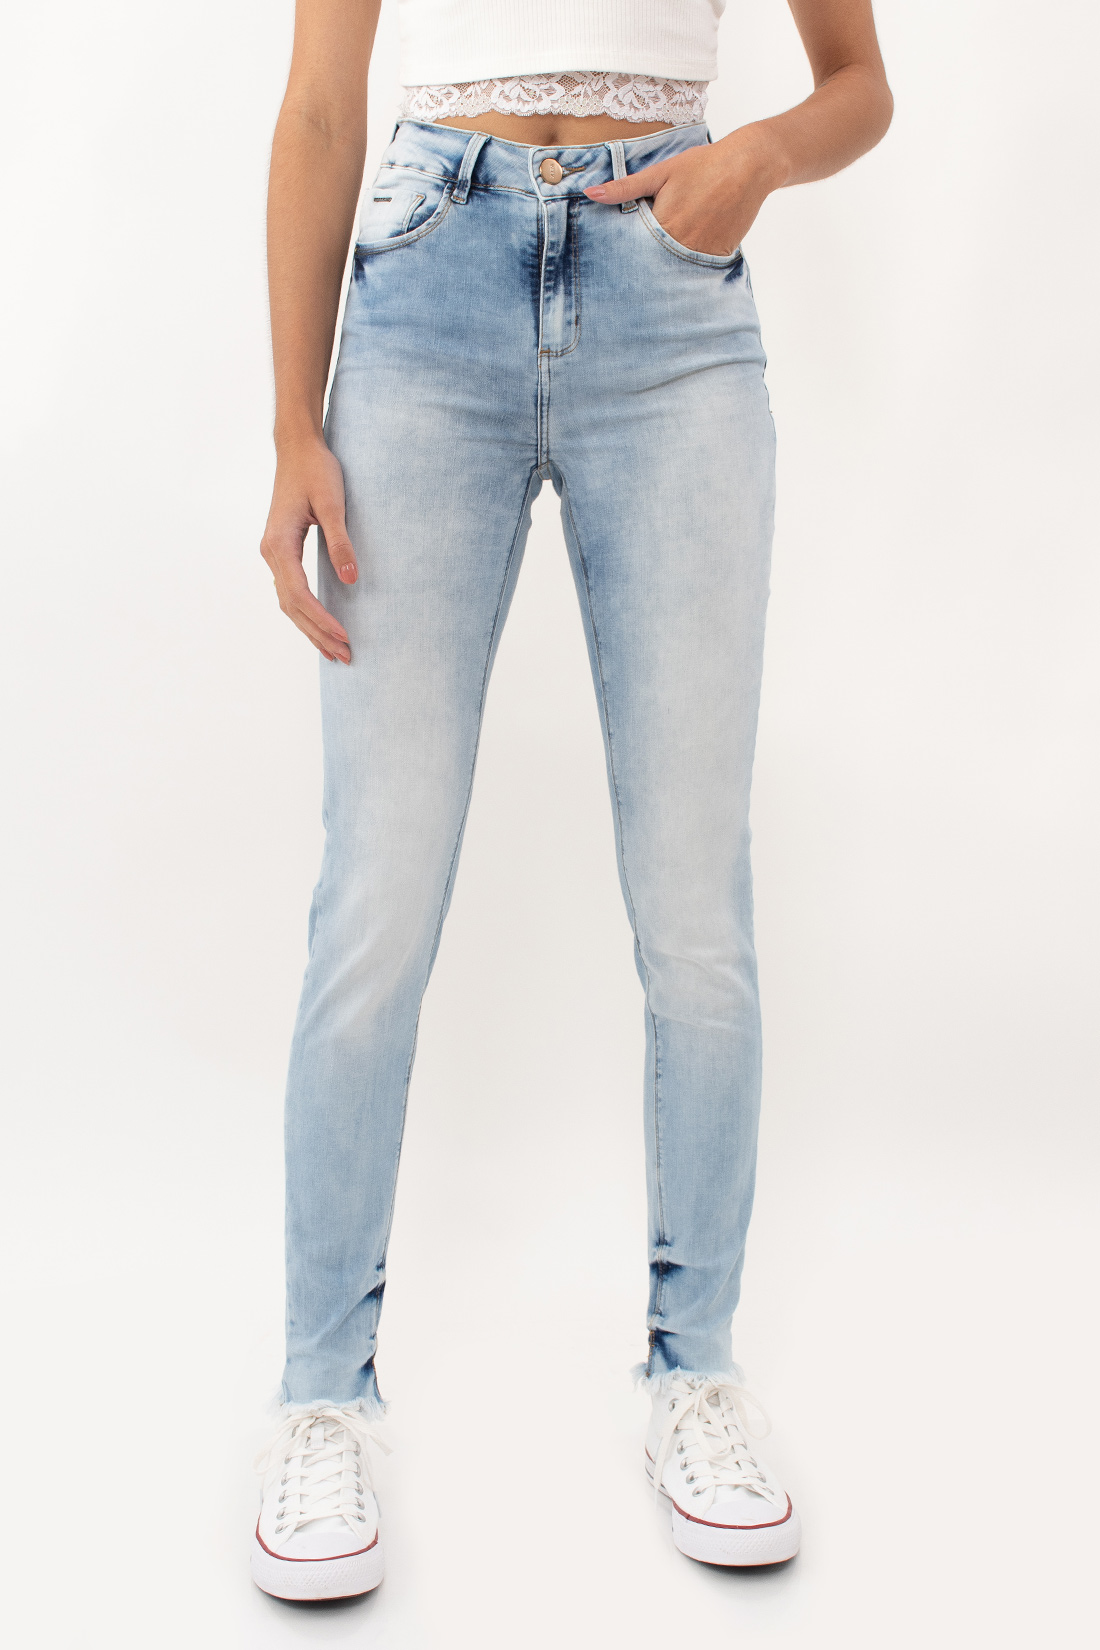 Calca Jeans Yexx Taylor Jegging